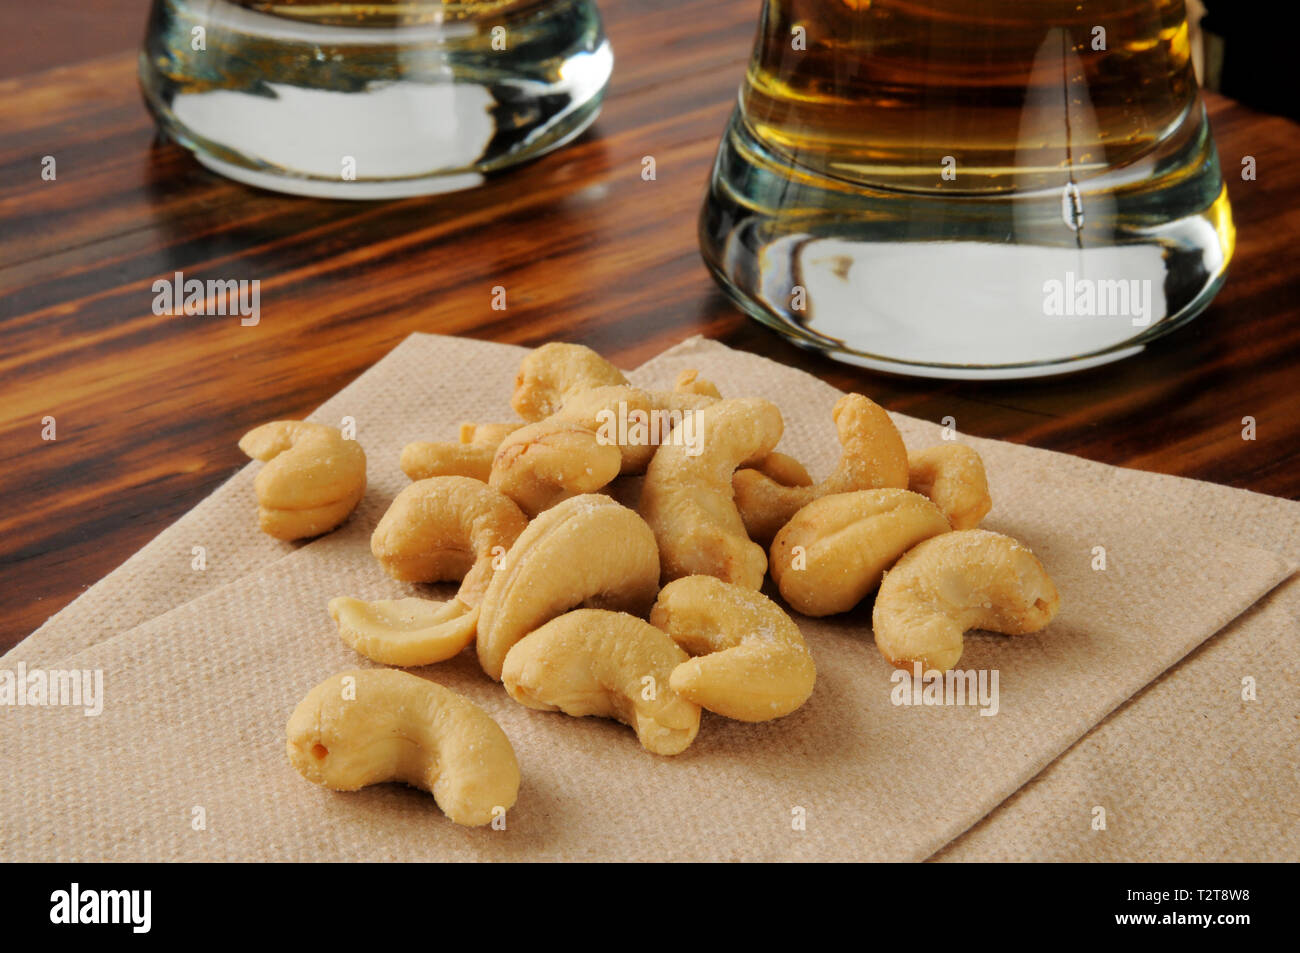 Salted cashews on a cocktail napkin with beer in the background - Stock Image